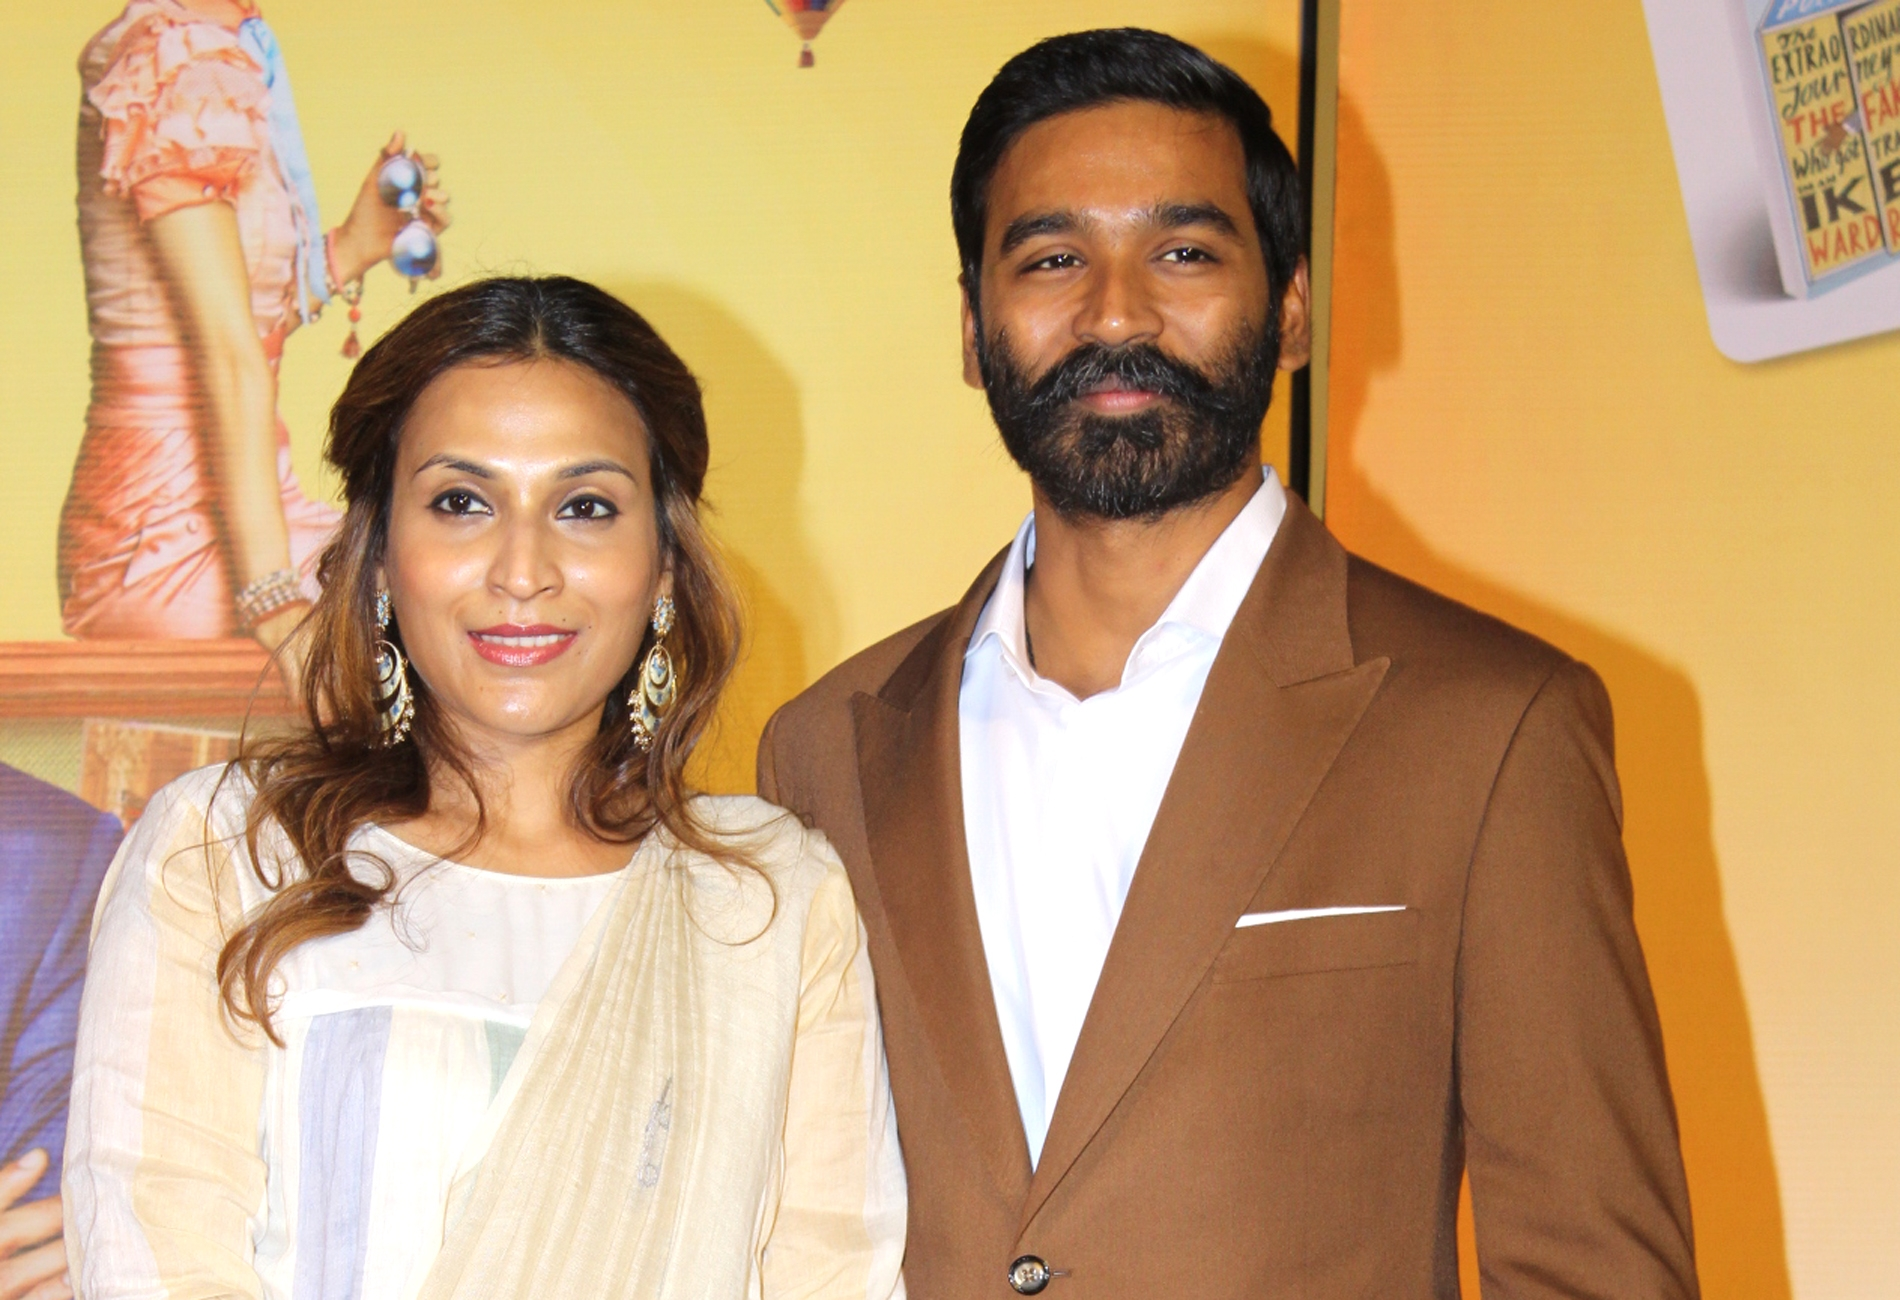 """Mumbai: Actor Dhanush with his wife Aishwarya R. Dhanush at the trailer launch of his upcoming film """"The Extraordinary Journey of the Fakir"""", in Mumbai, on June 4, 2019. (Photo: IANS) ⋆ Bollywood Pub"""